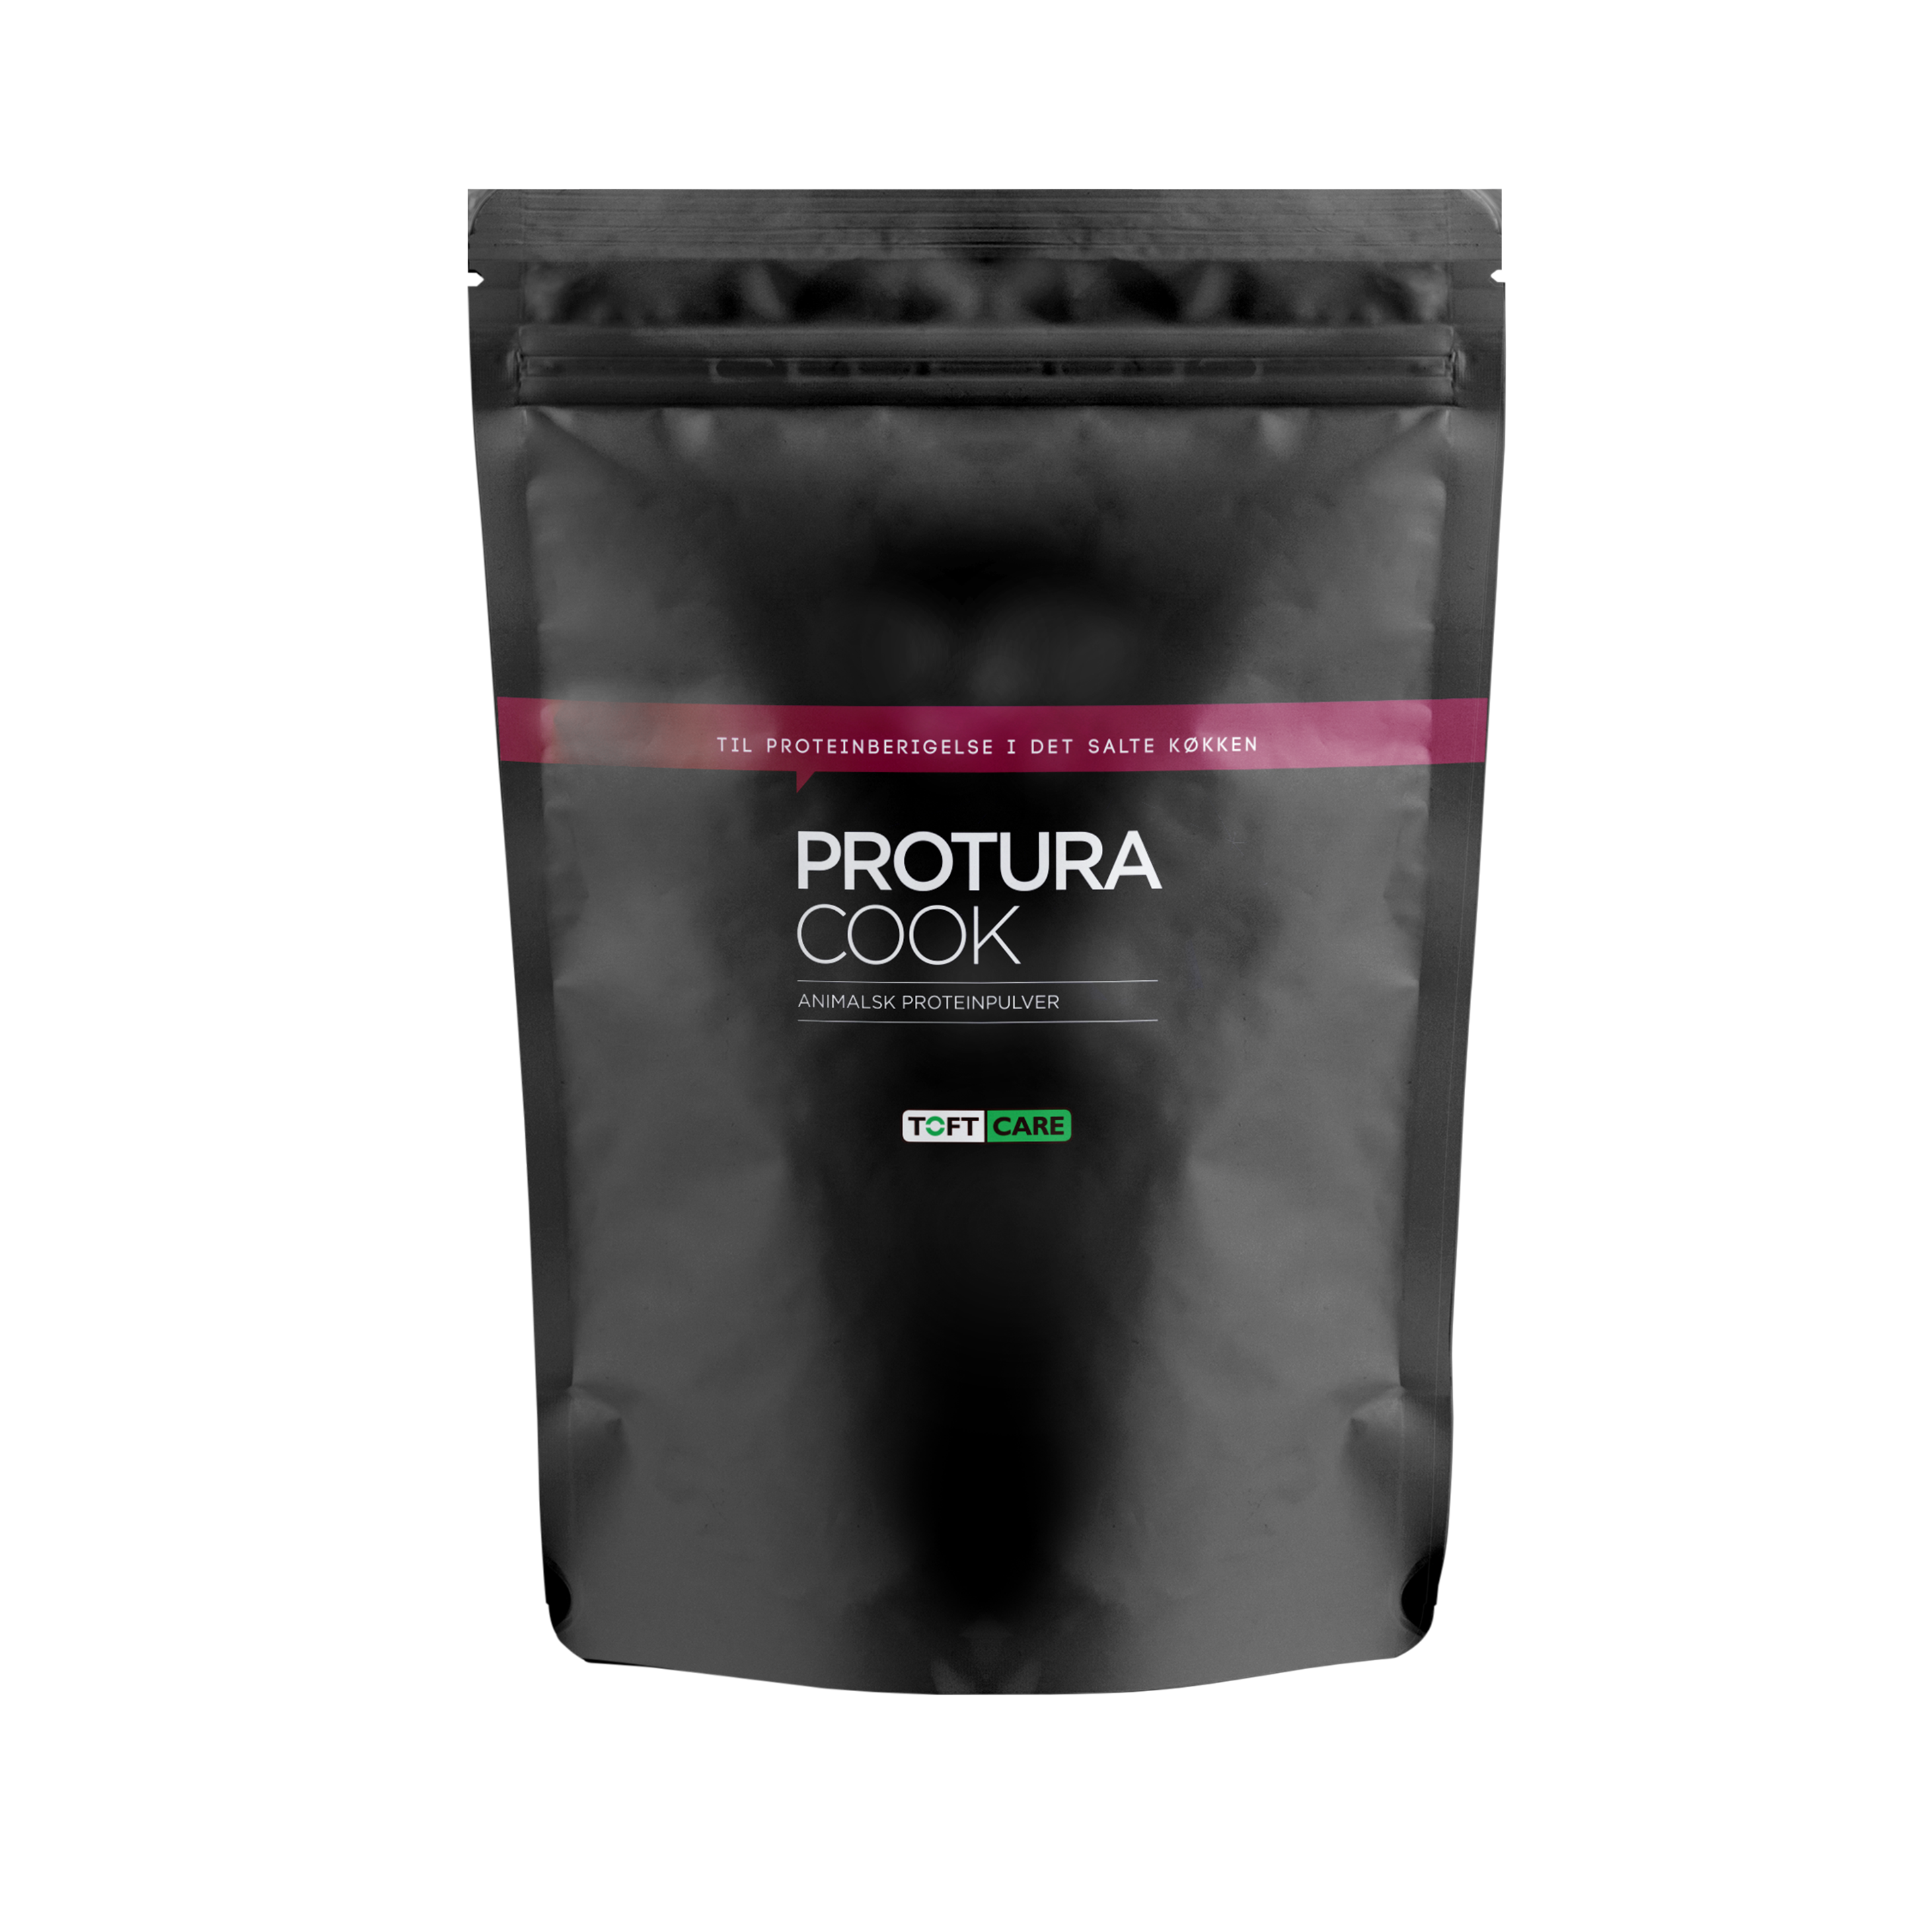 Image of Protura Cook 600 g